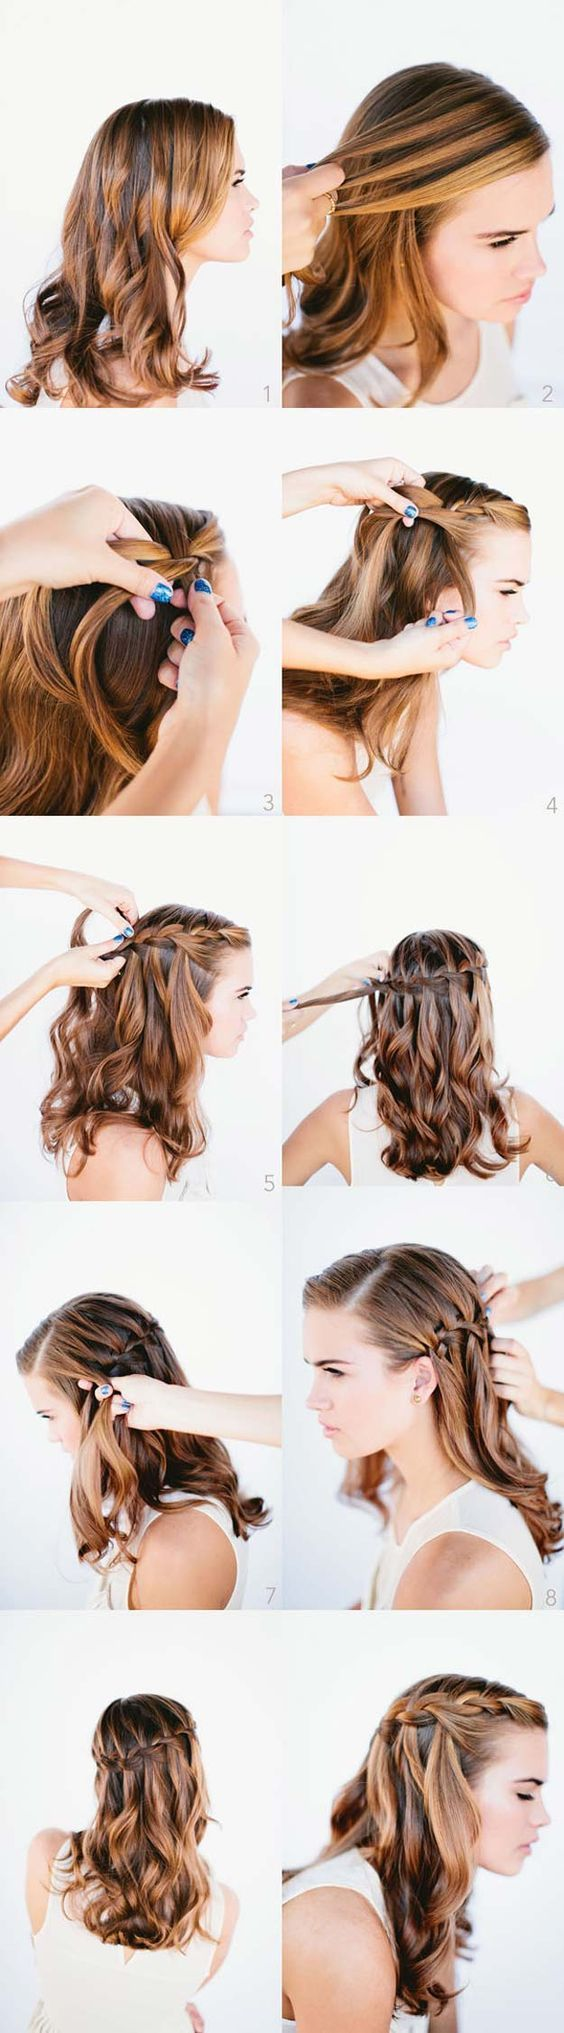 best hair images on pinterest hair makeup hairdos and long hair